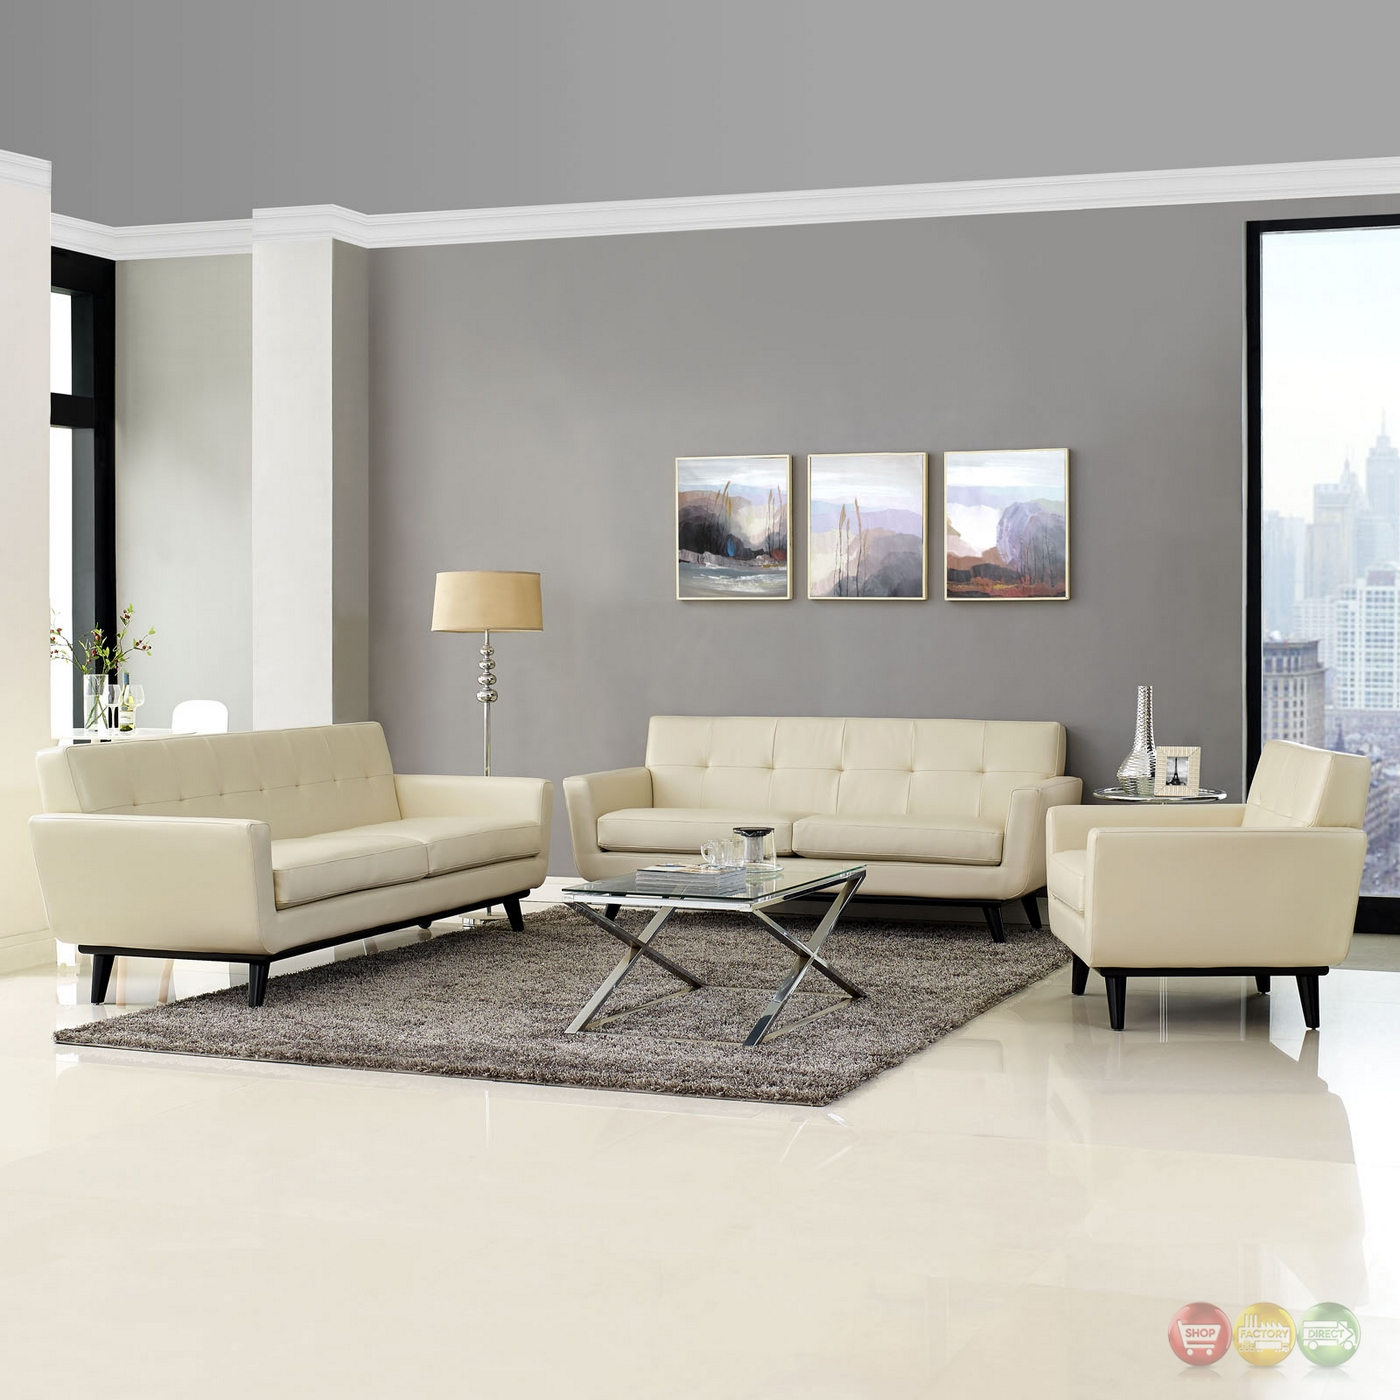 Century modern engage 3pc button tufted leather living room set beige